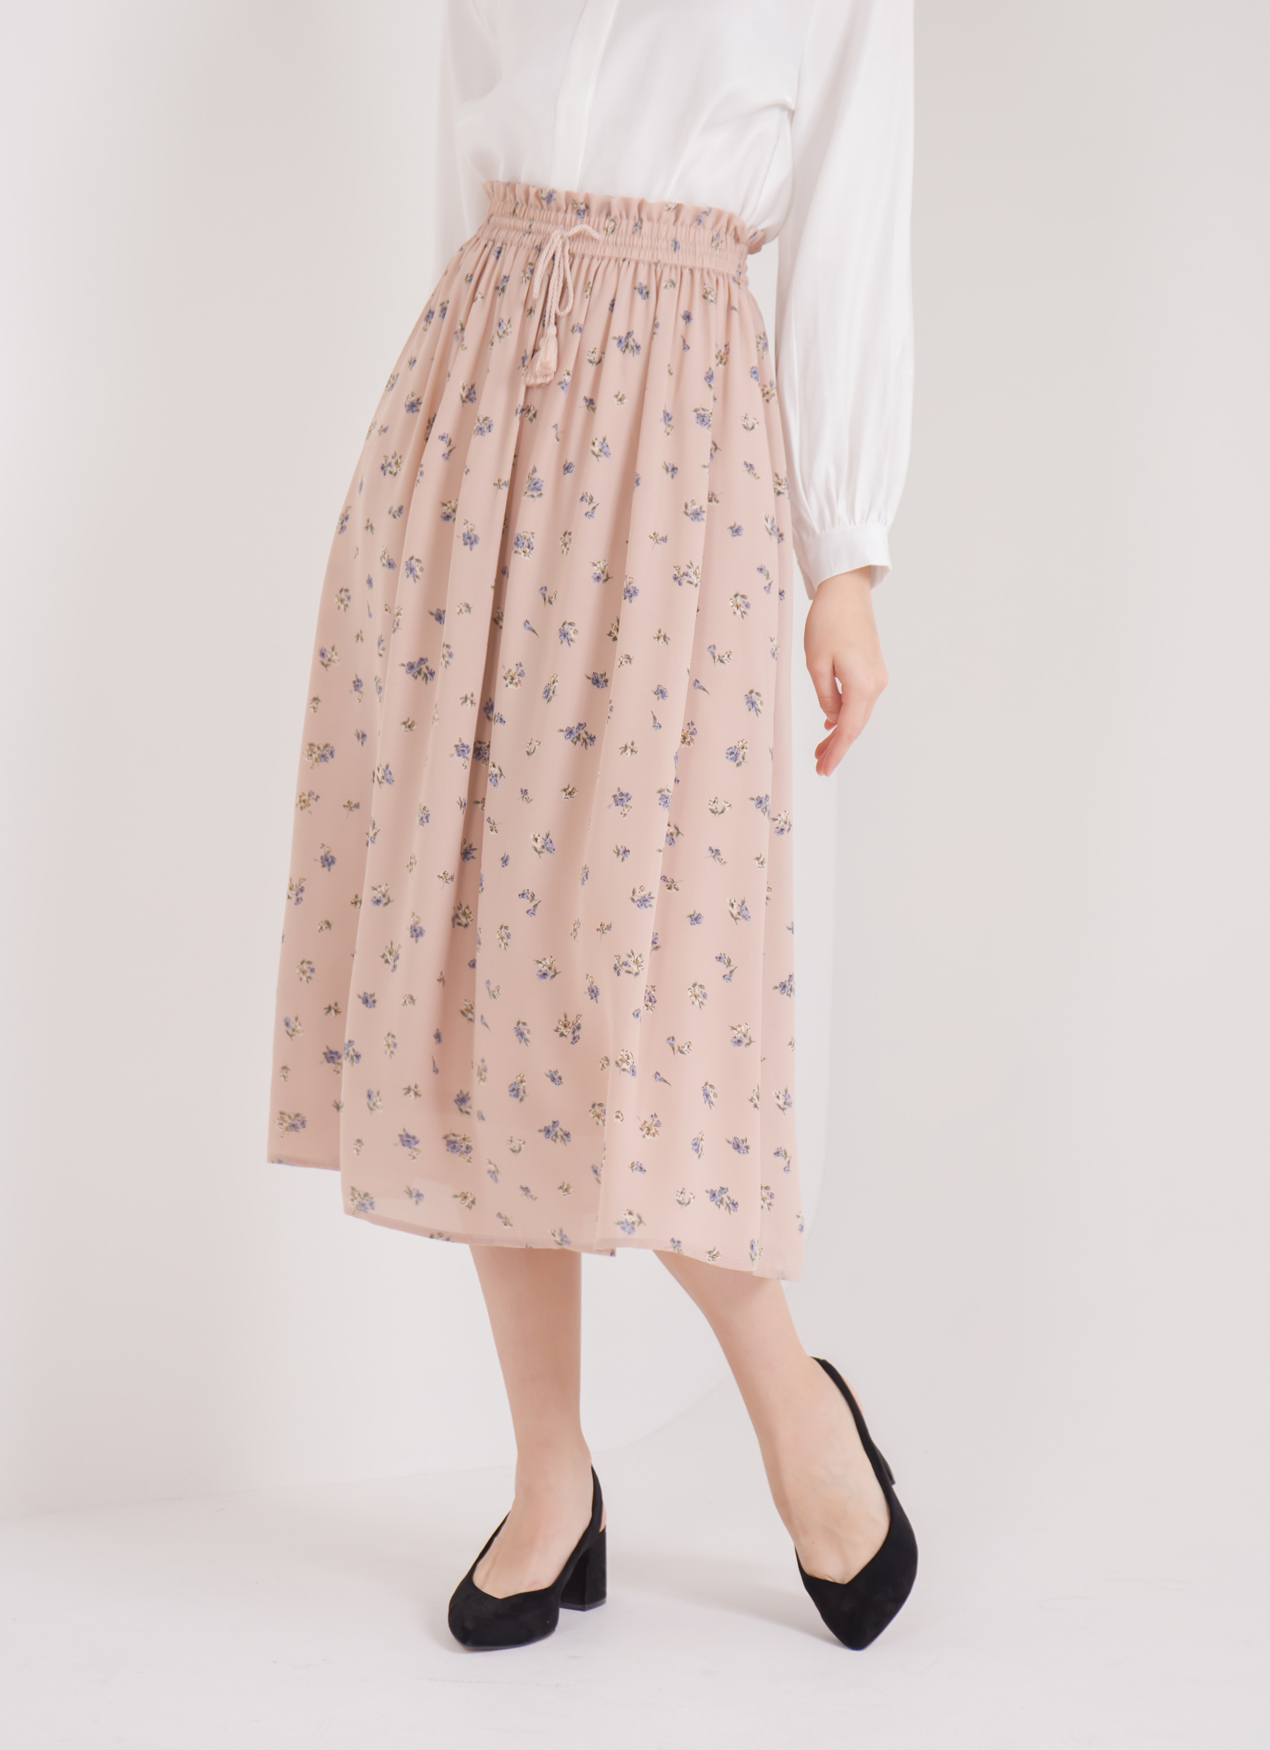 Earth, Music & Ecology Suzie Skirt - Light Pink